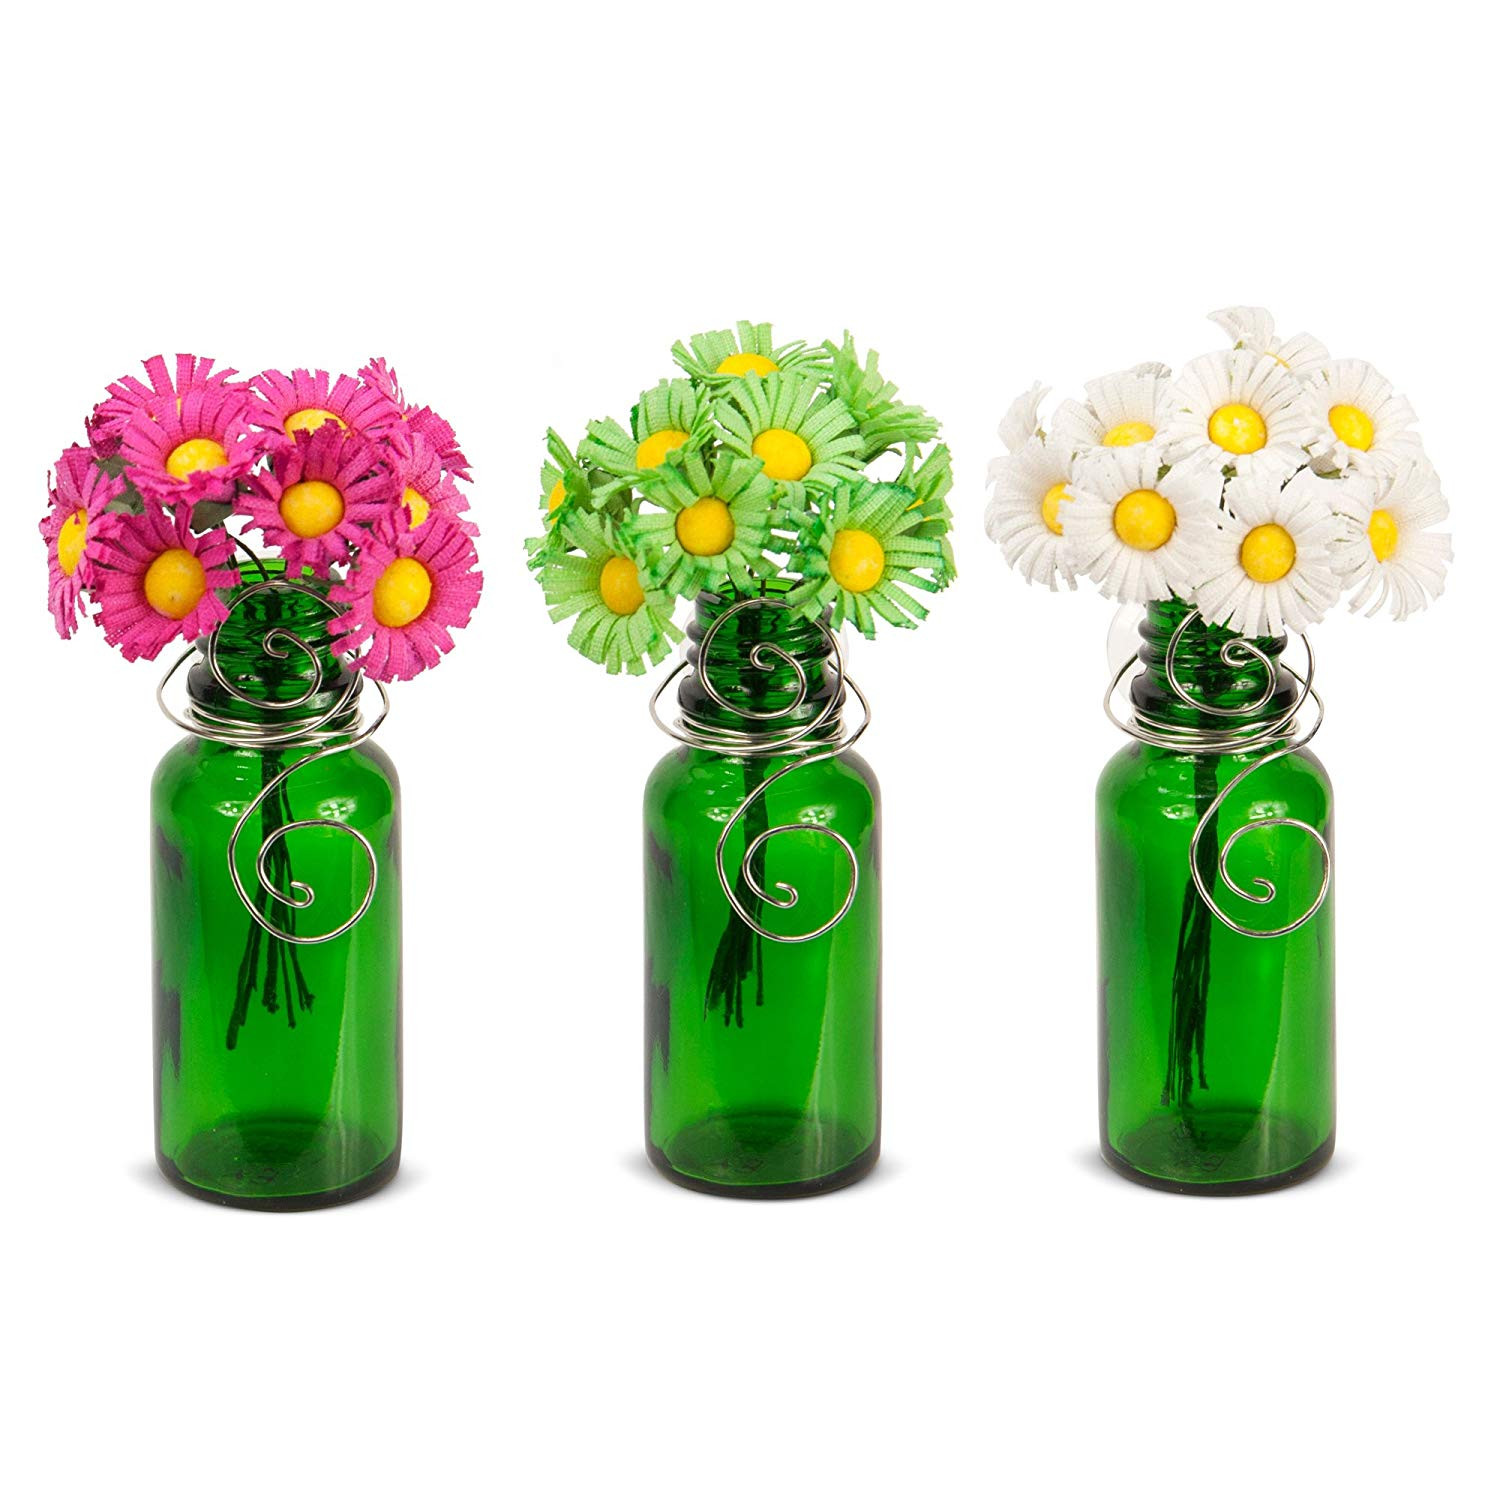 small clear glass bud vases of amazon com vazzini mini vase bouquet suction cup bud bottle with regard to amazon com vazzini mini vase bouquet suction cup bud bottle holder with flowers decorative for window mirrors tile wedding party favor get well